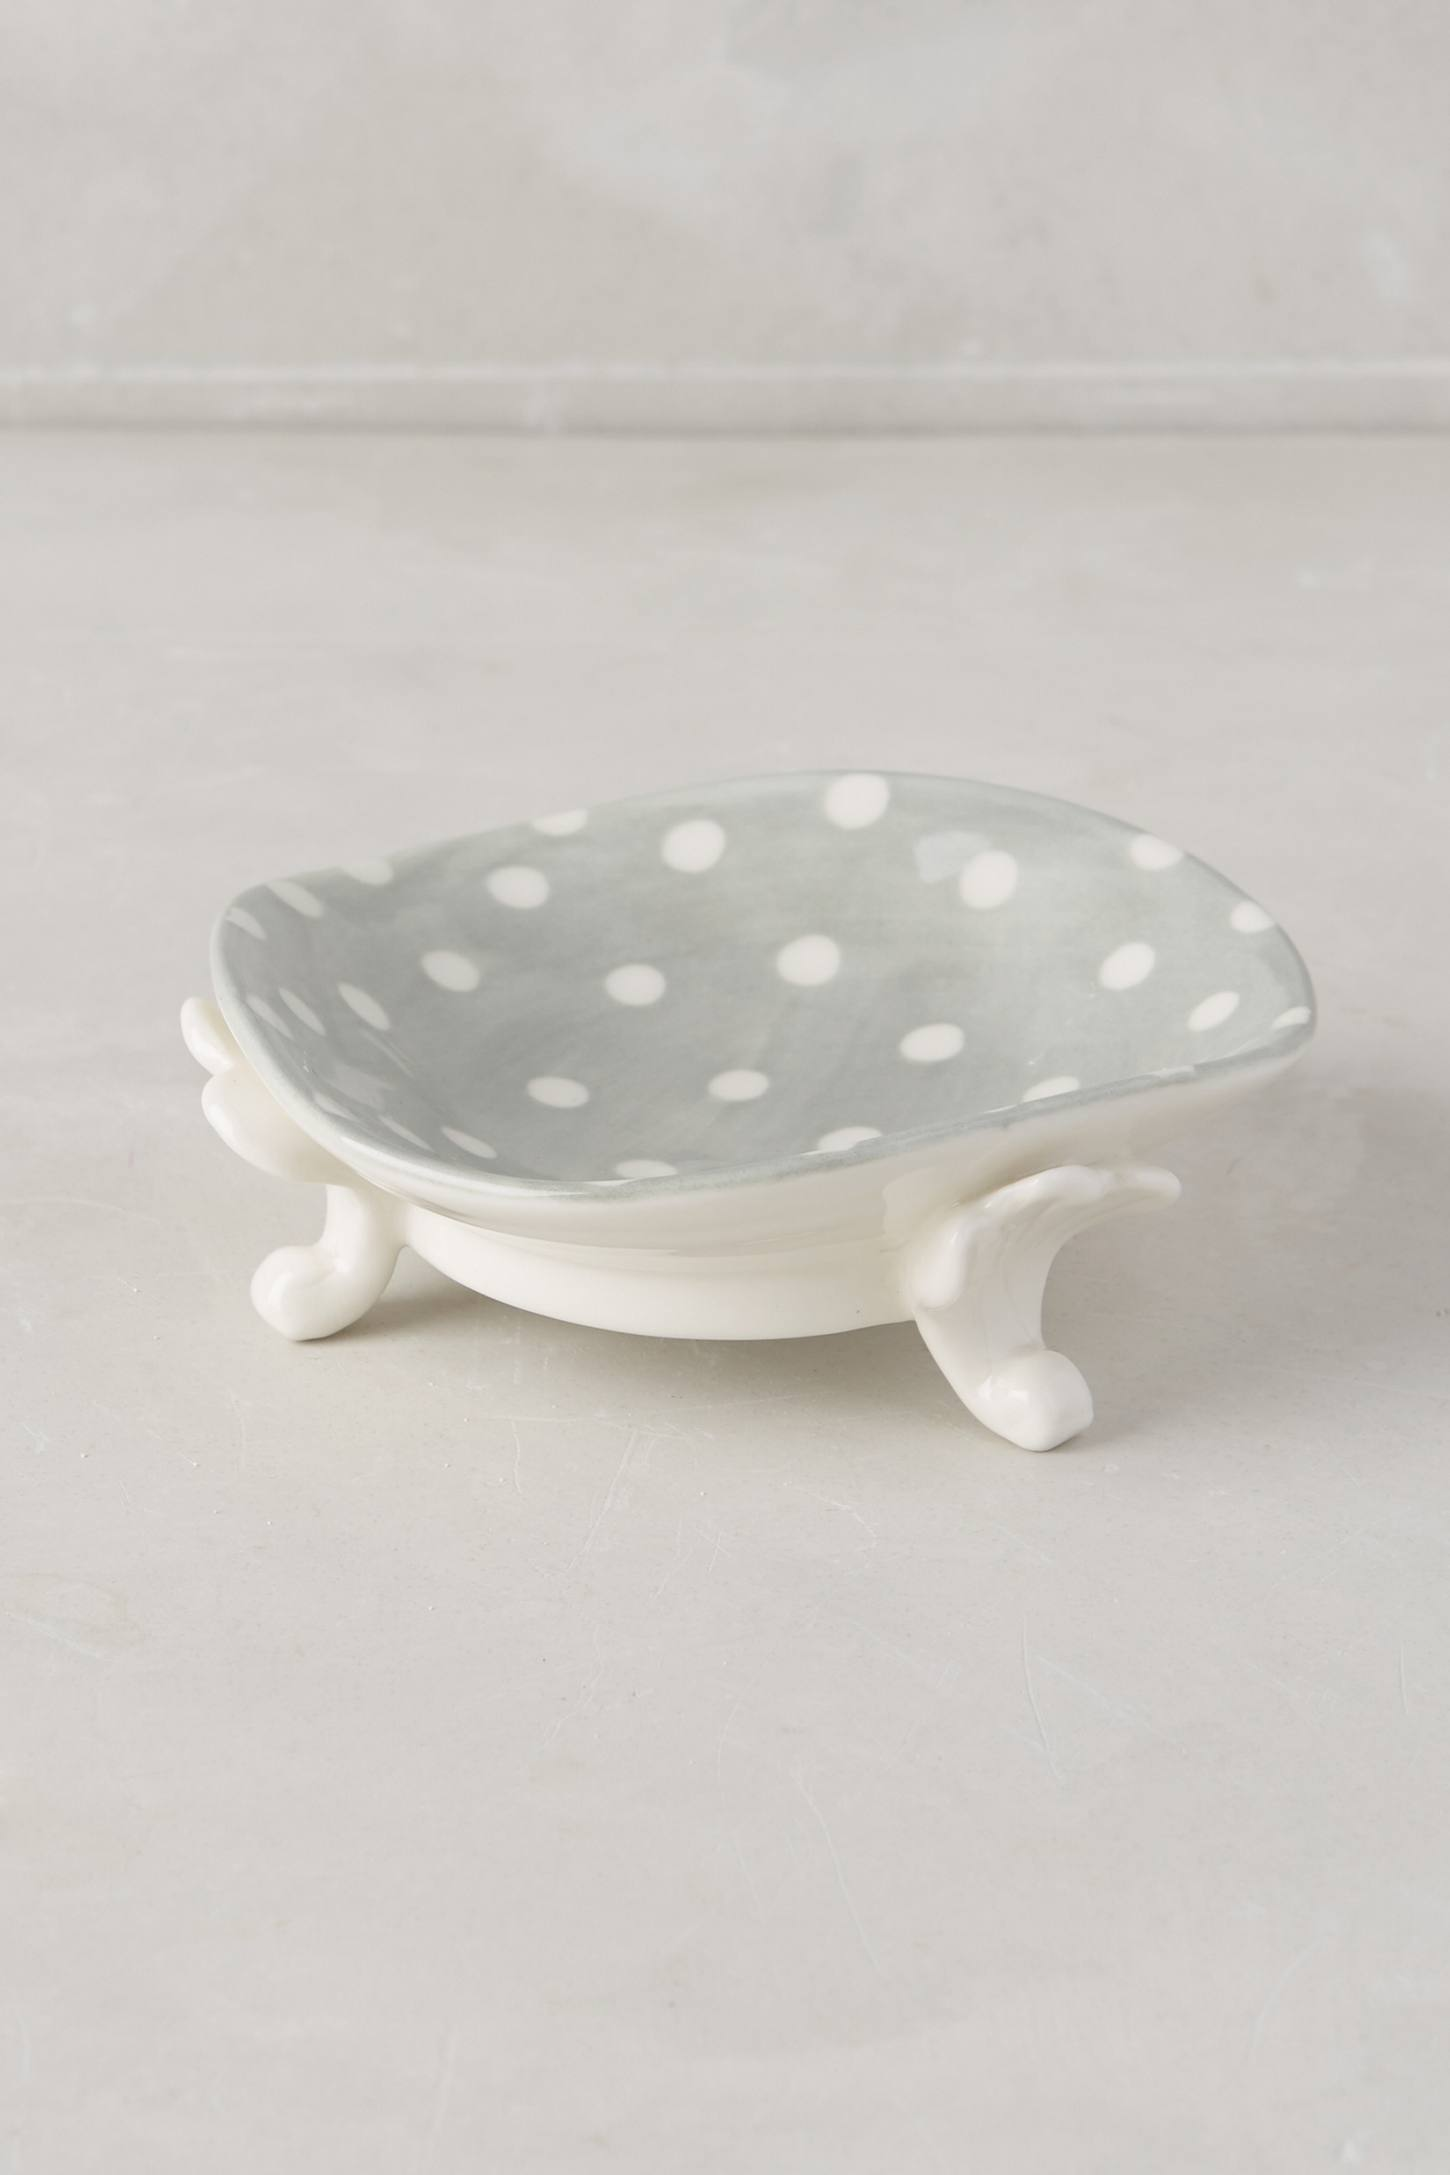 Handpainted Dots Bath Container